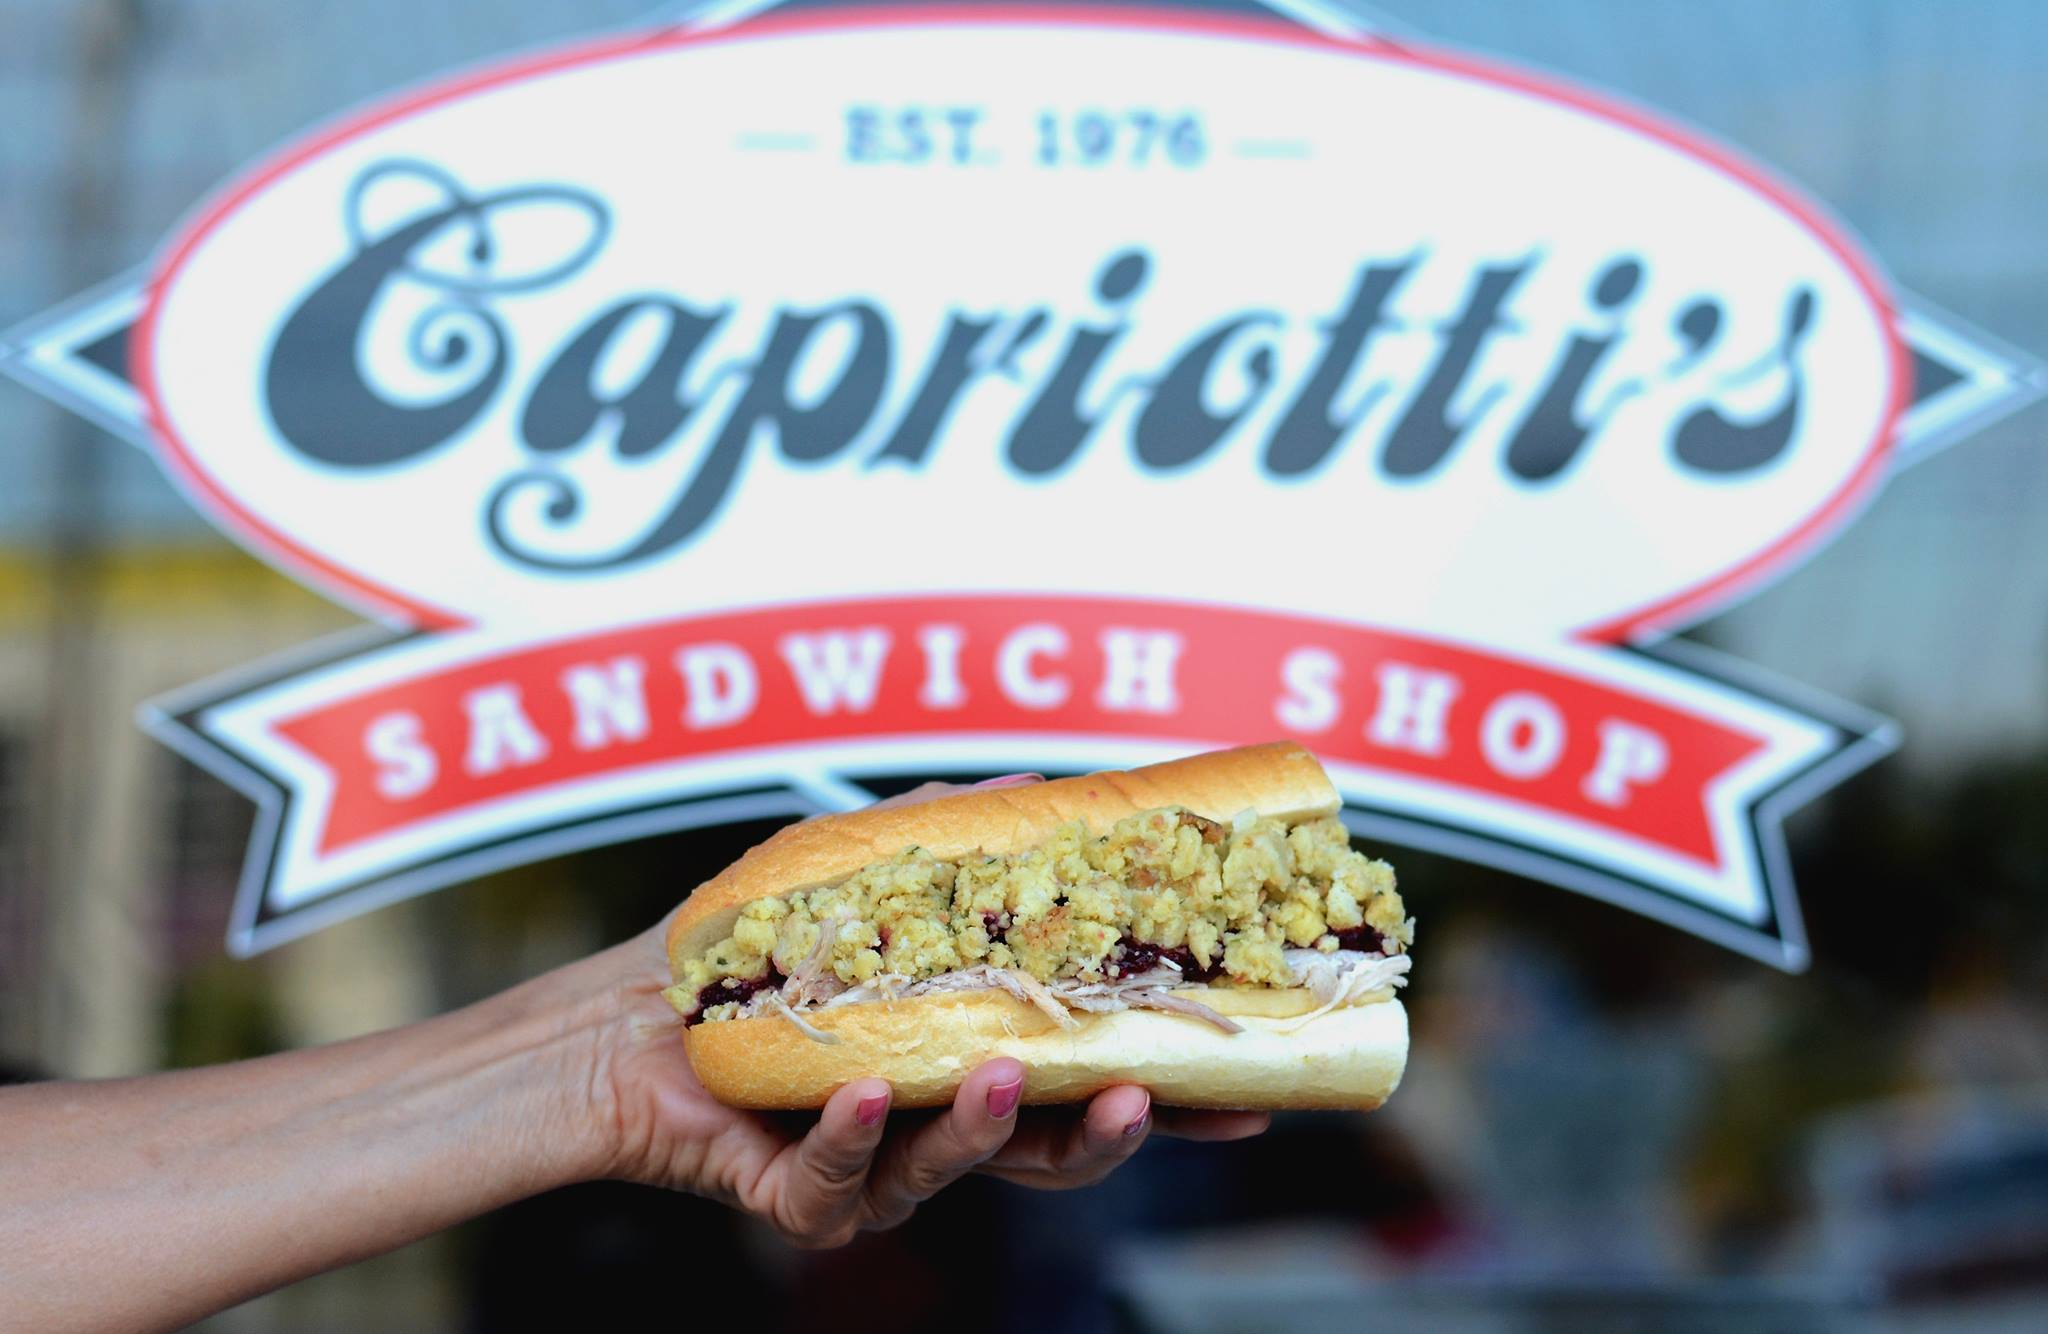 Capriotti's logo with a sandwich